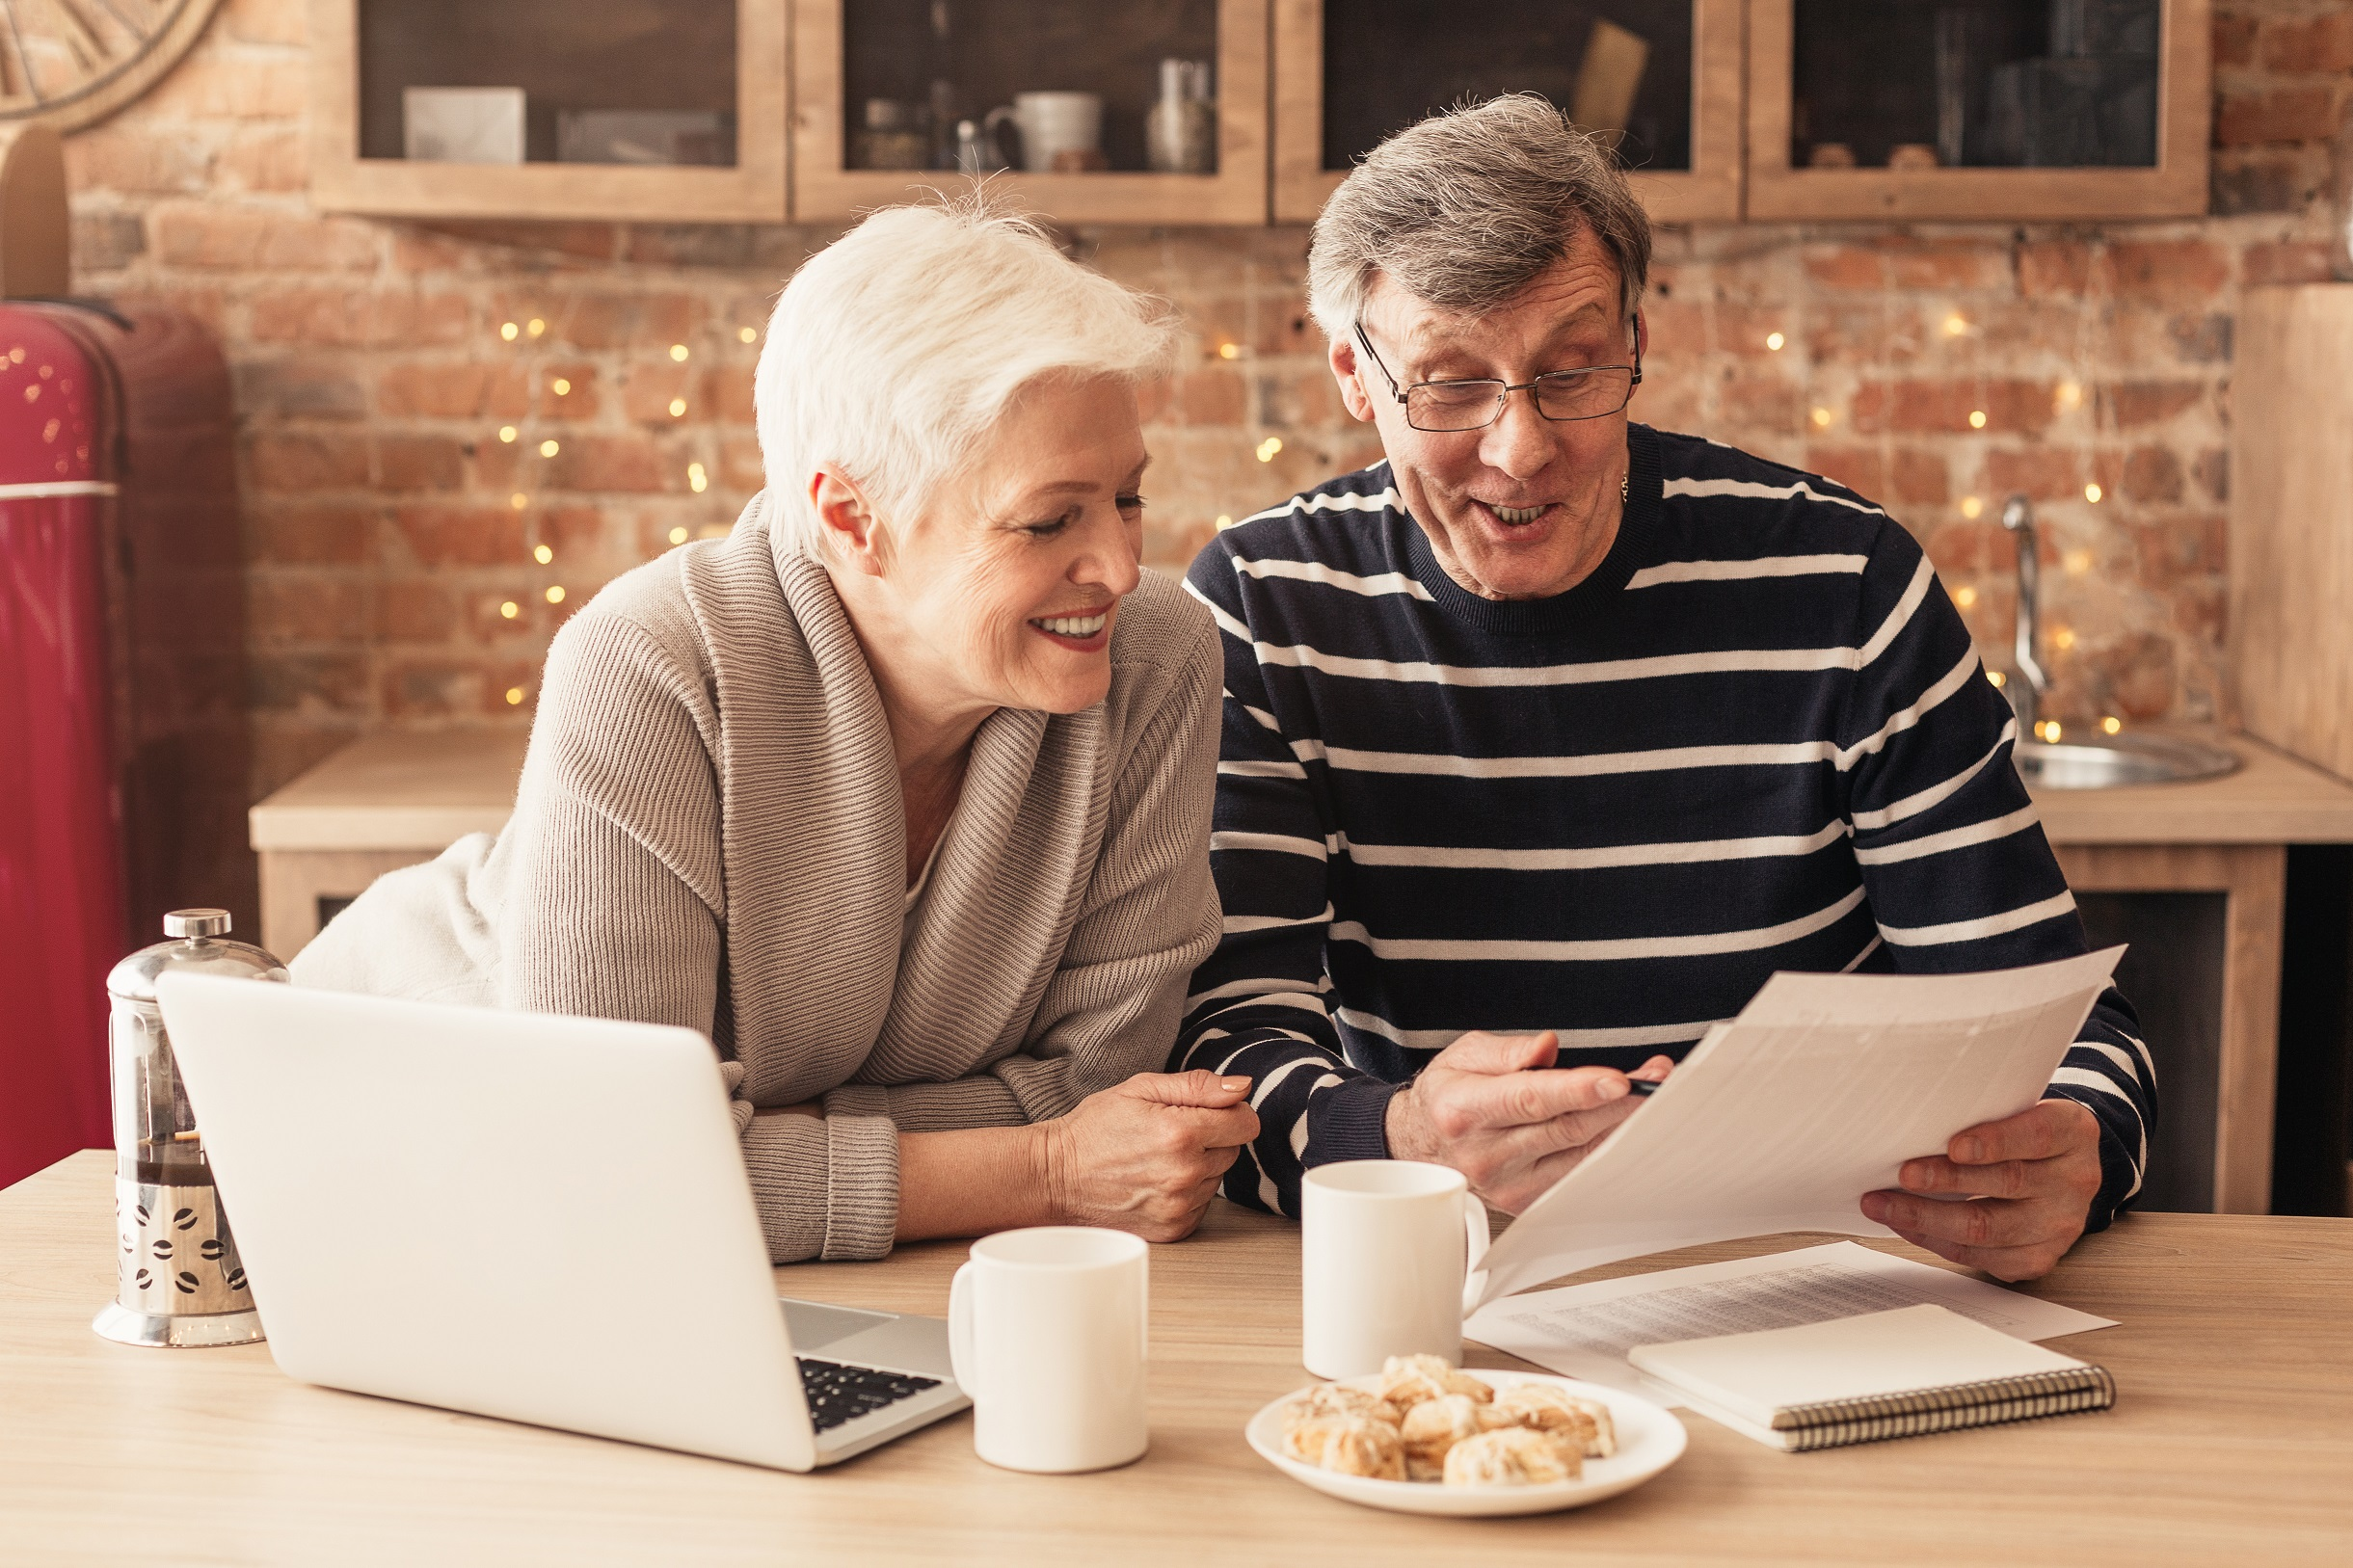 Smiling Senior Couple Reading Health Insurance Policy Contract In Kitchen Together